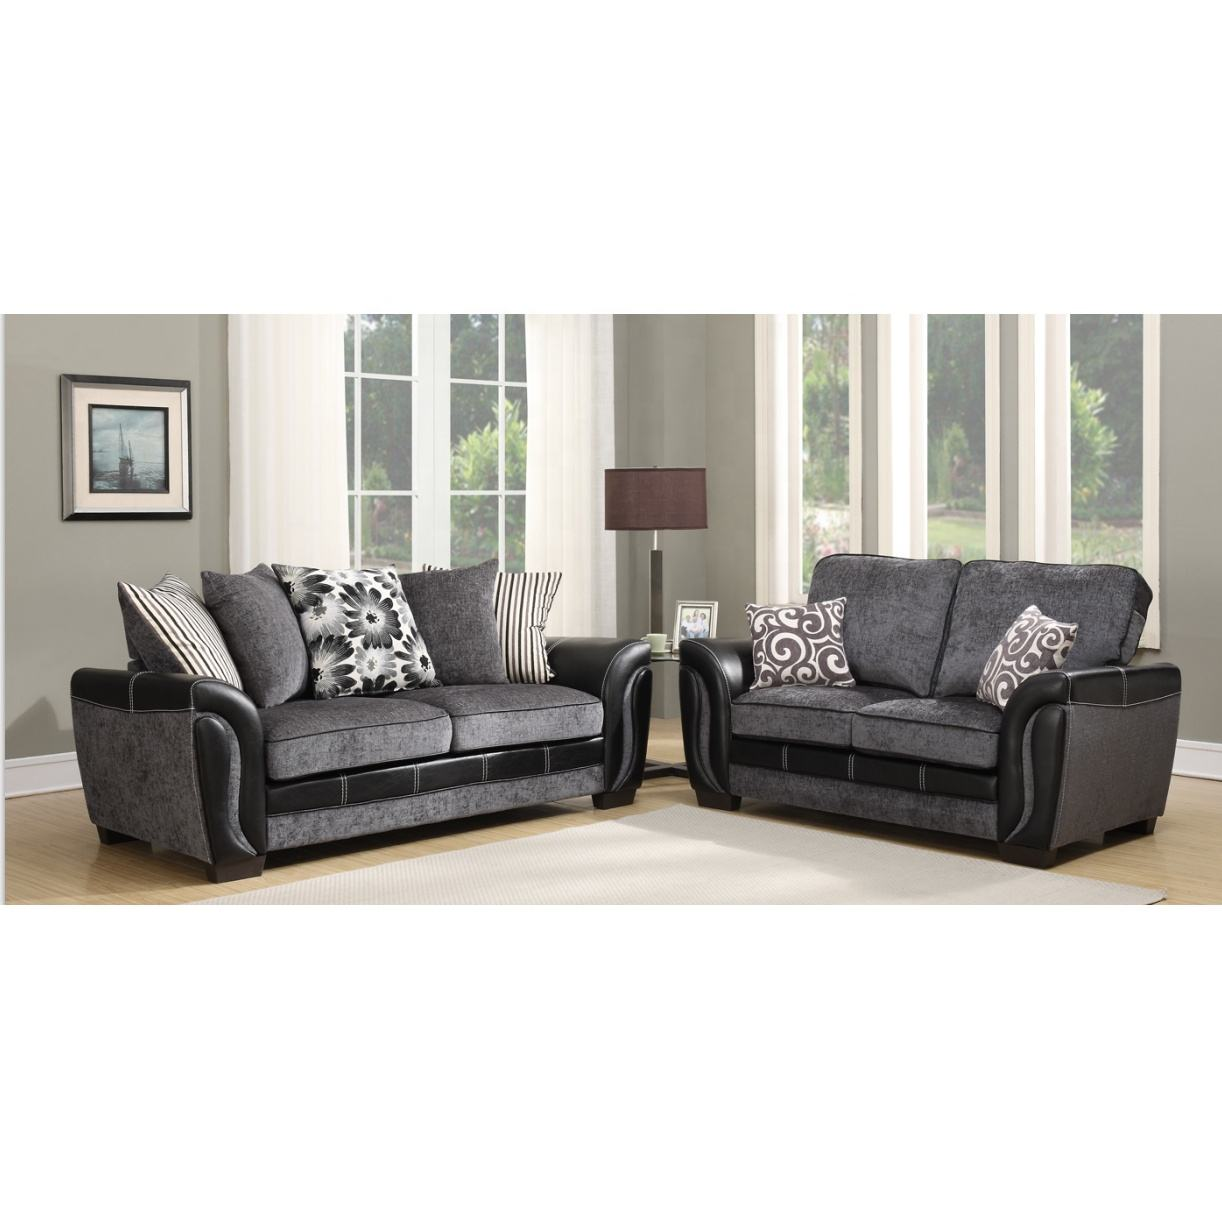 Europe luxury sofa 3 seaters loveseat sofa set for living room lounge sofa home furniture